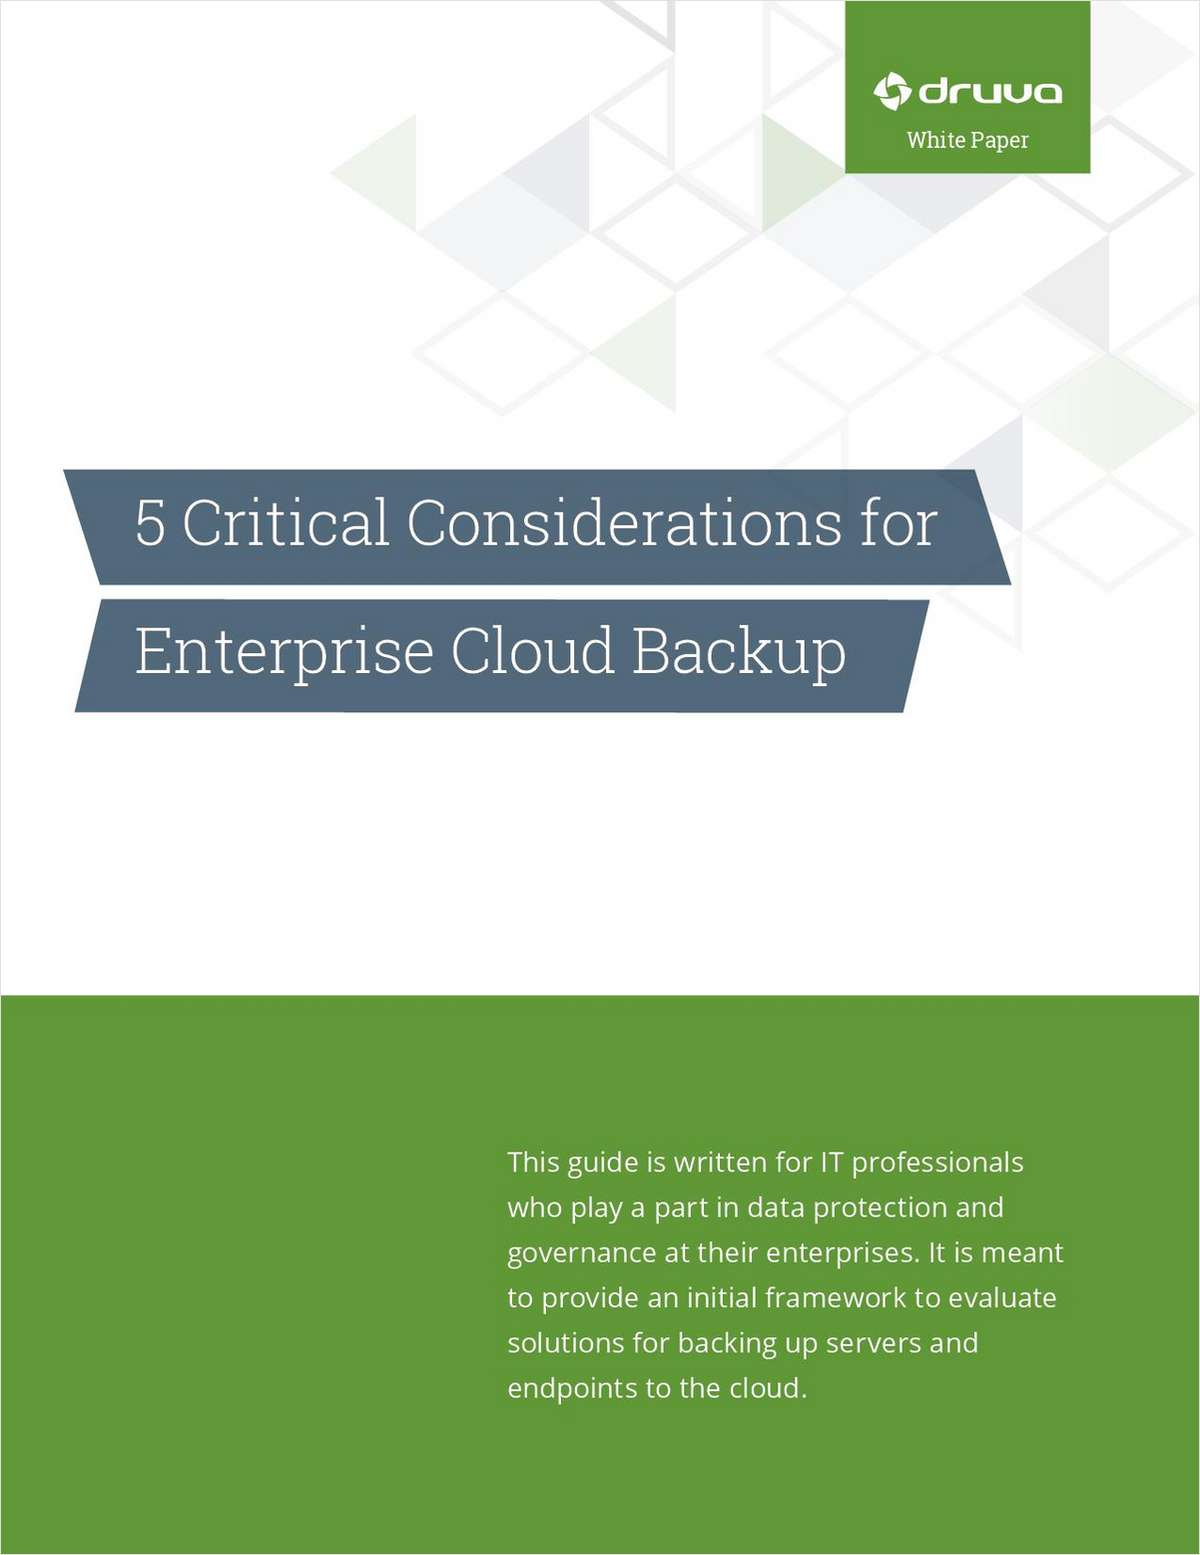 5 Critical Considerations for Enterprise Cloud Backup